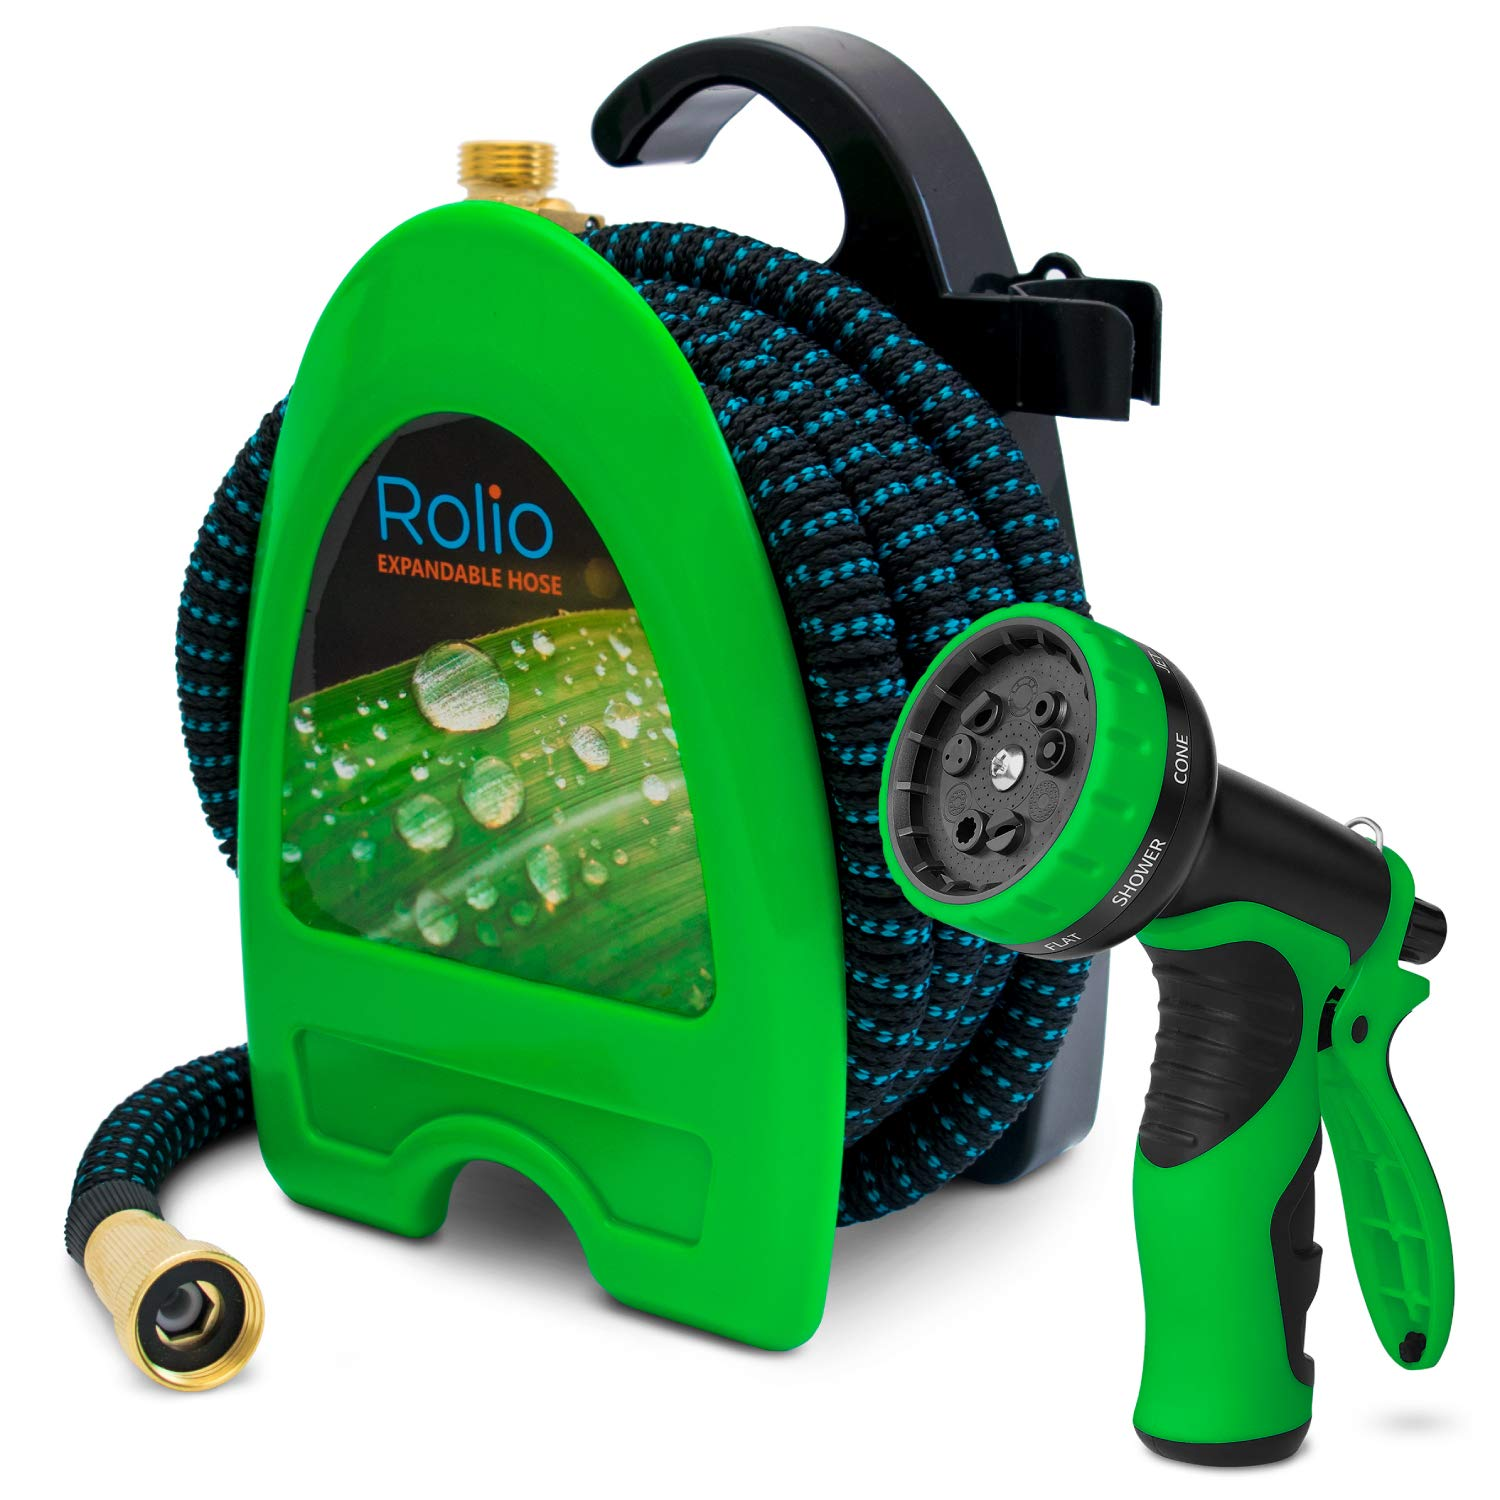 "Rolio Expandable Garden Hose with Hose Reel - 75 FT Garden Hose with 9 Function Spray Nozzle Included, 3/4"" Solid Brass Fittings, No Kinks"